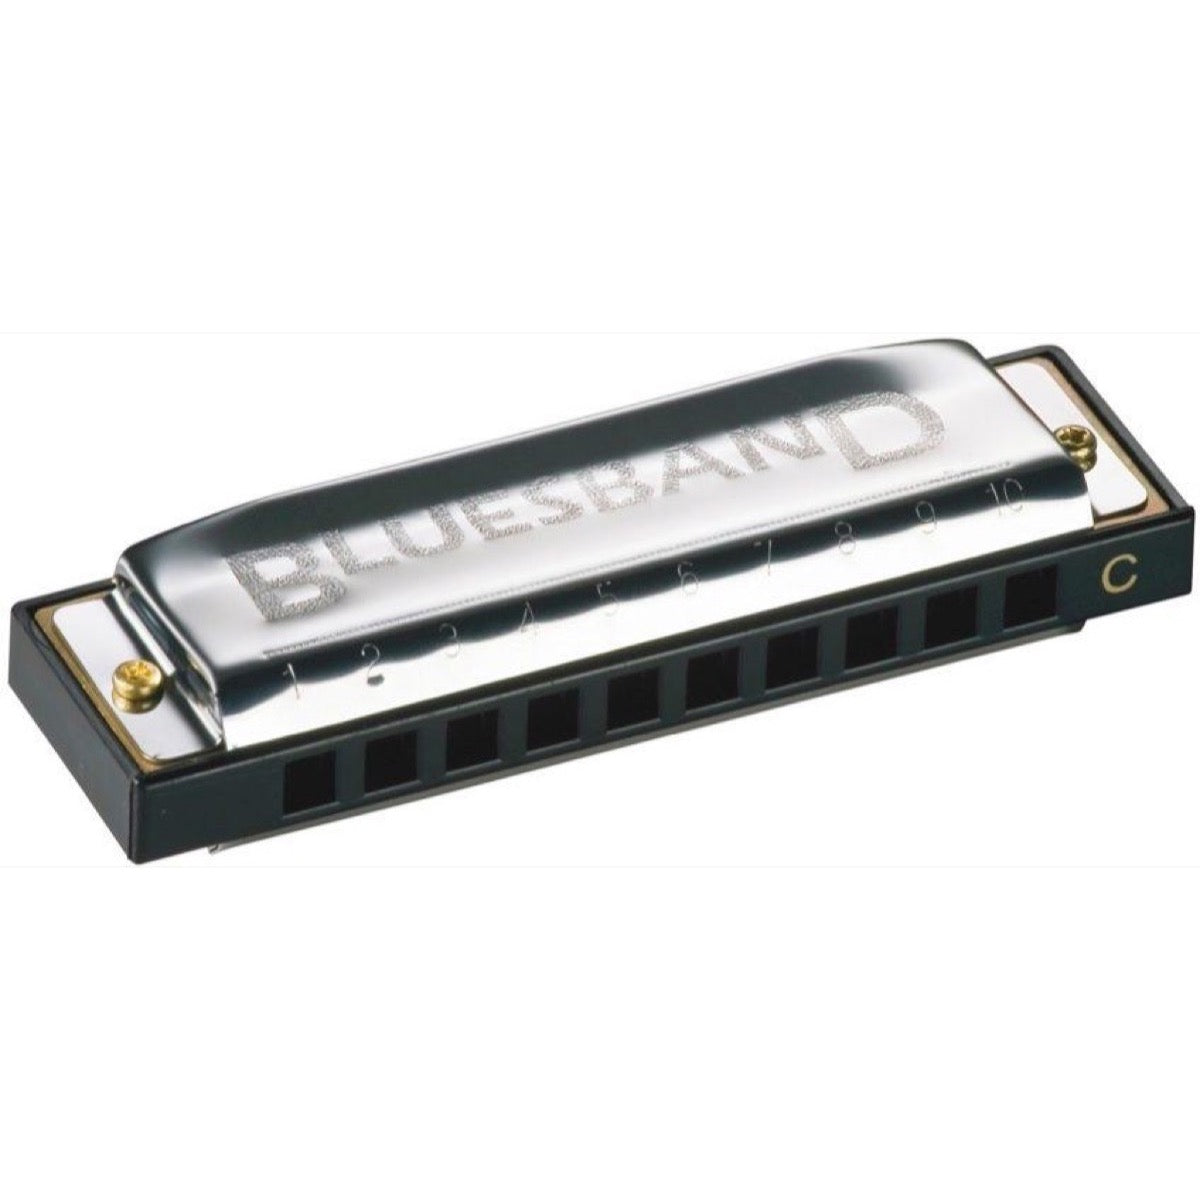 Hohner 1501 Blues Band Harmonica, Key of C